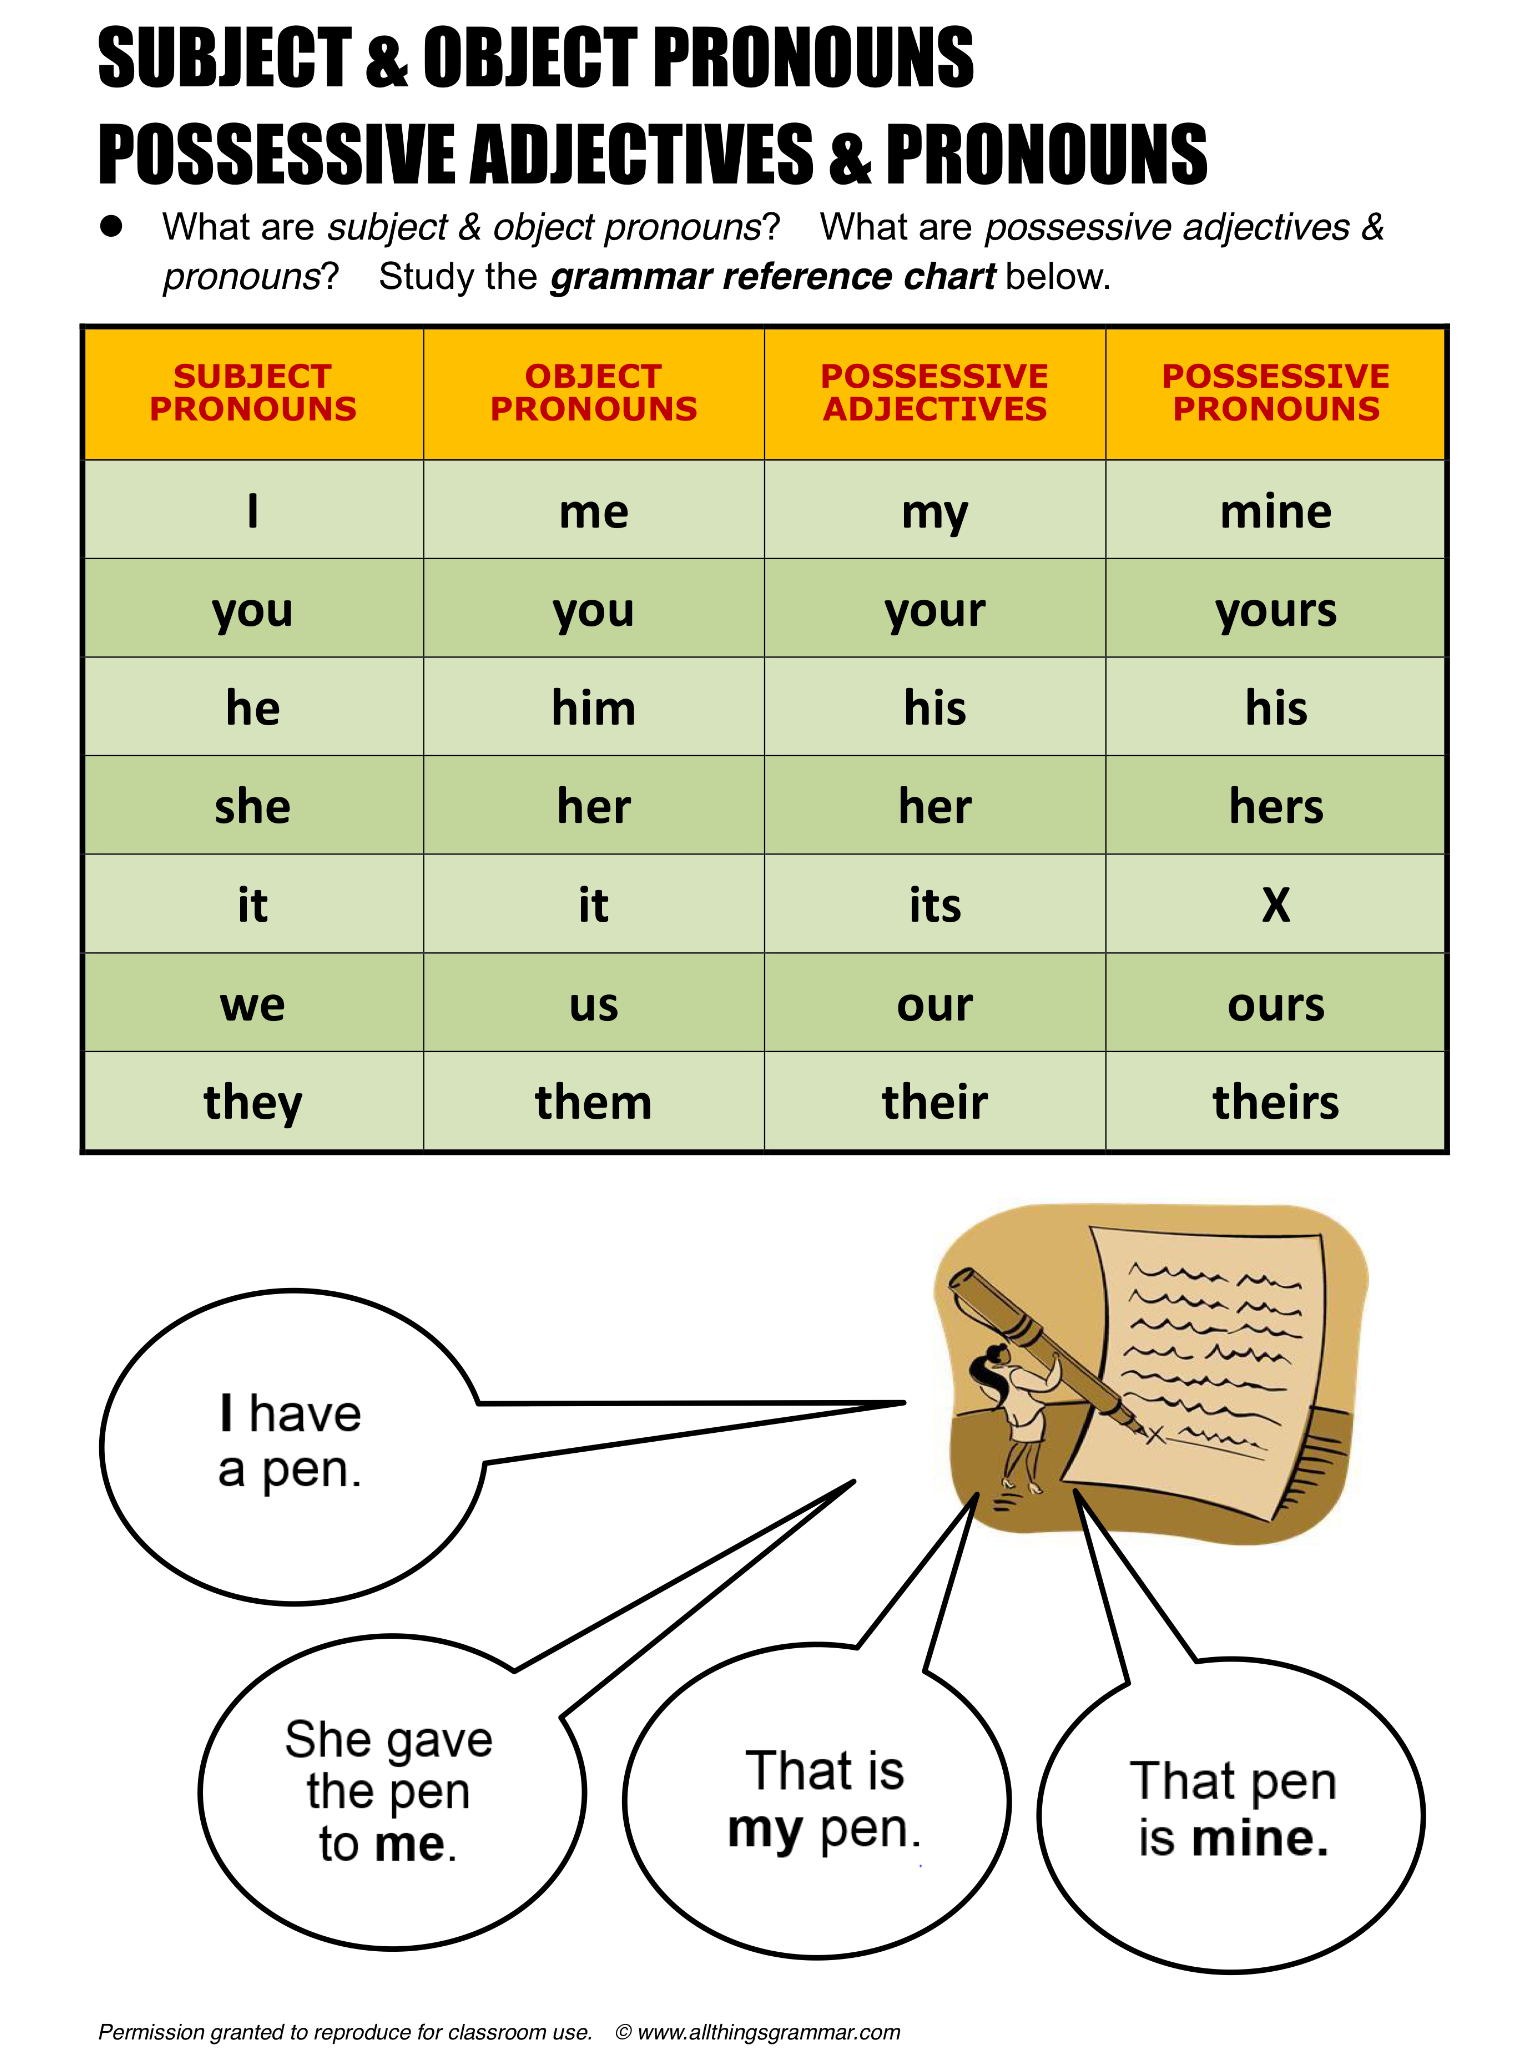 Free Esl Pronouns Worksheets Order Of Adjectives Articles Indefinite A An Possessive Article